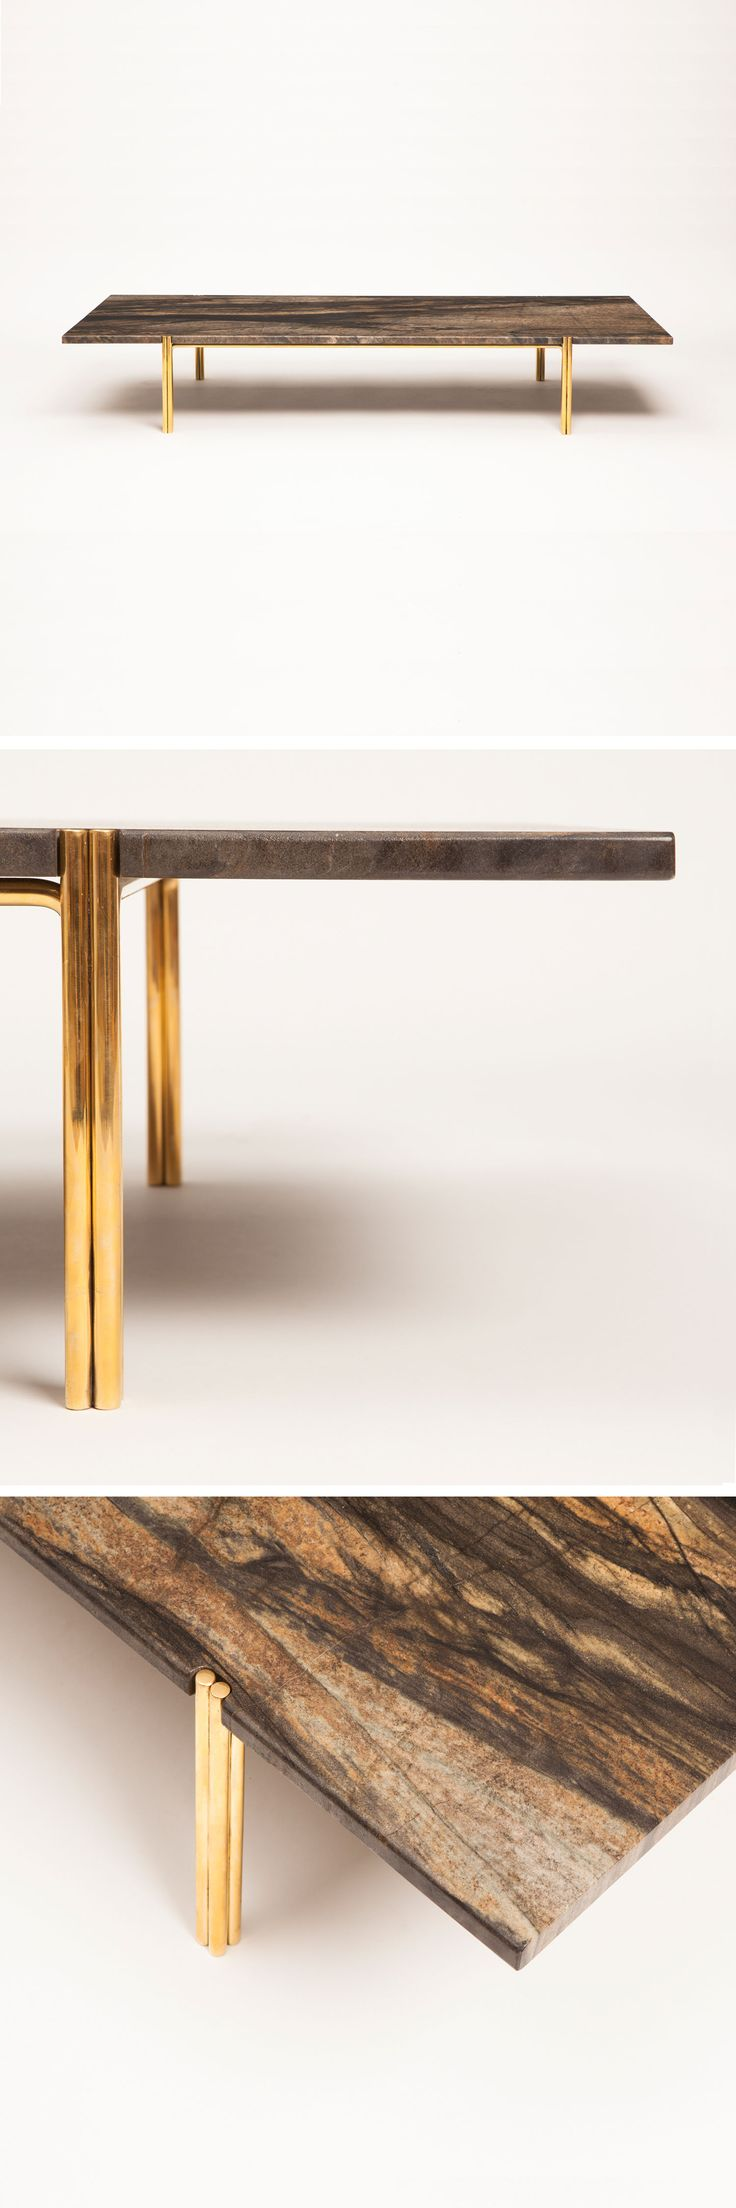 low table from Christopher Allen with marble and brass